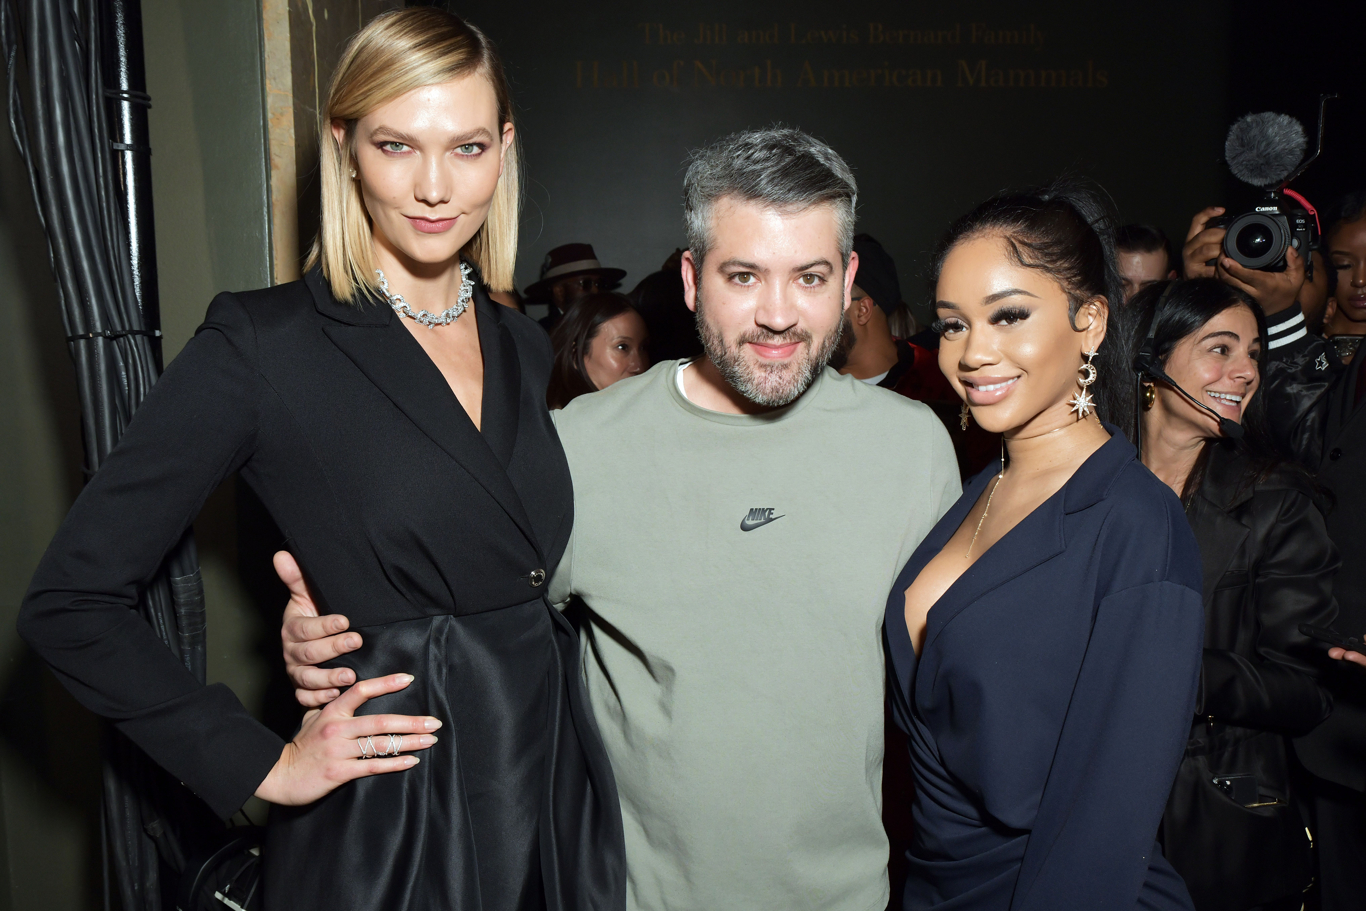 Karlie Kloss, Brandon Maxwell and Saweetie